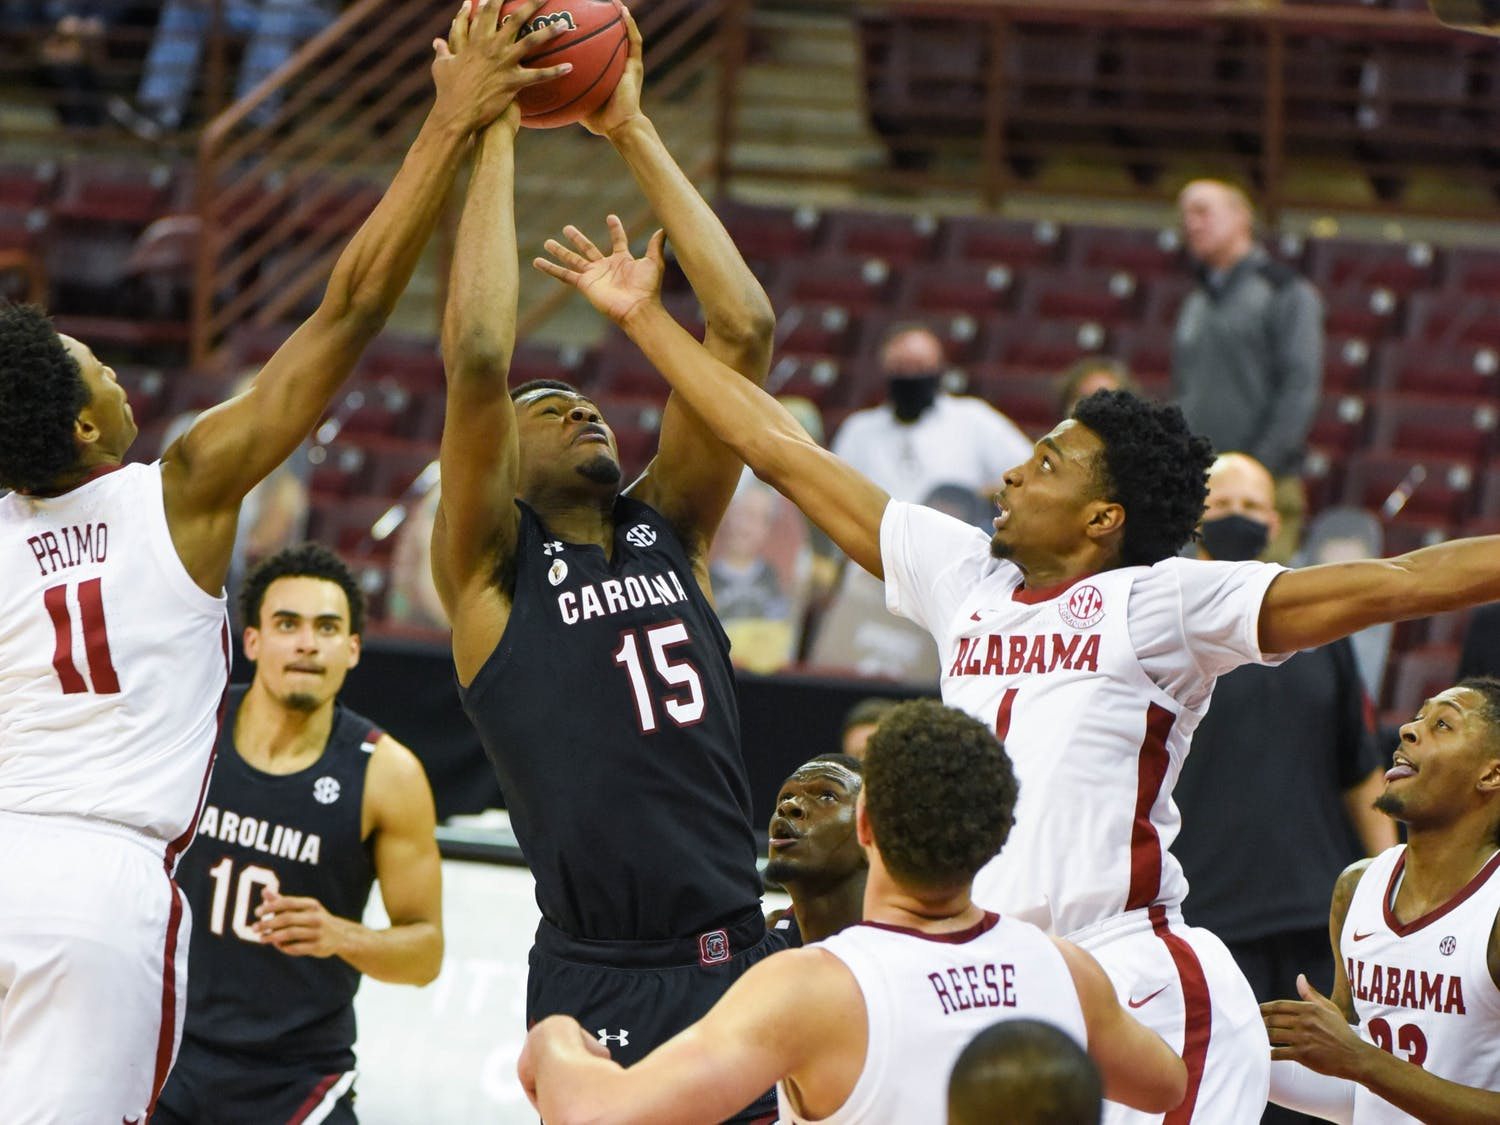 Sophomore forward/center Wildens Leveque holds the ball while Alabama players attempt to steal. South Carolina lost 81-78.